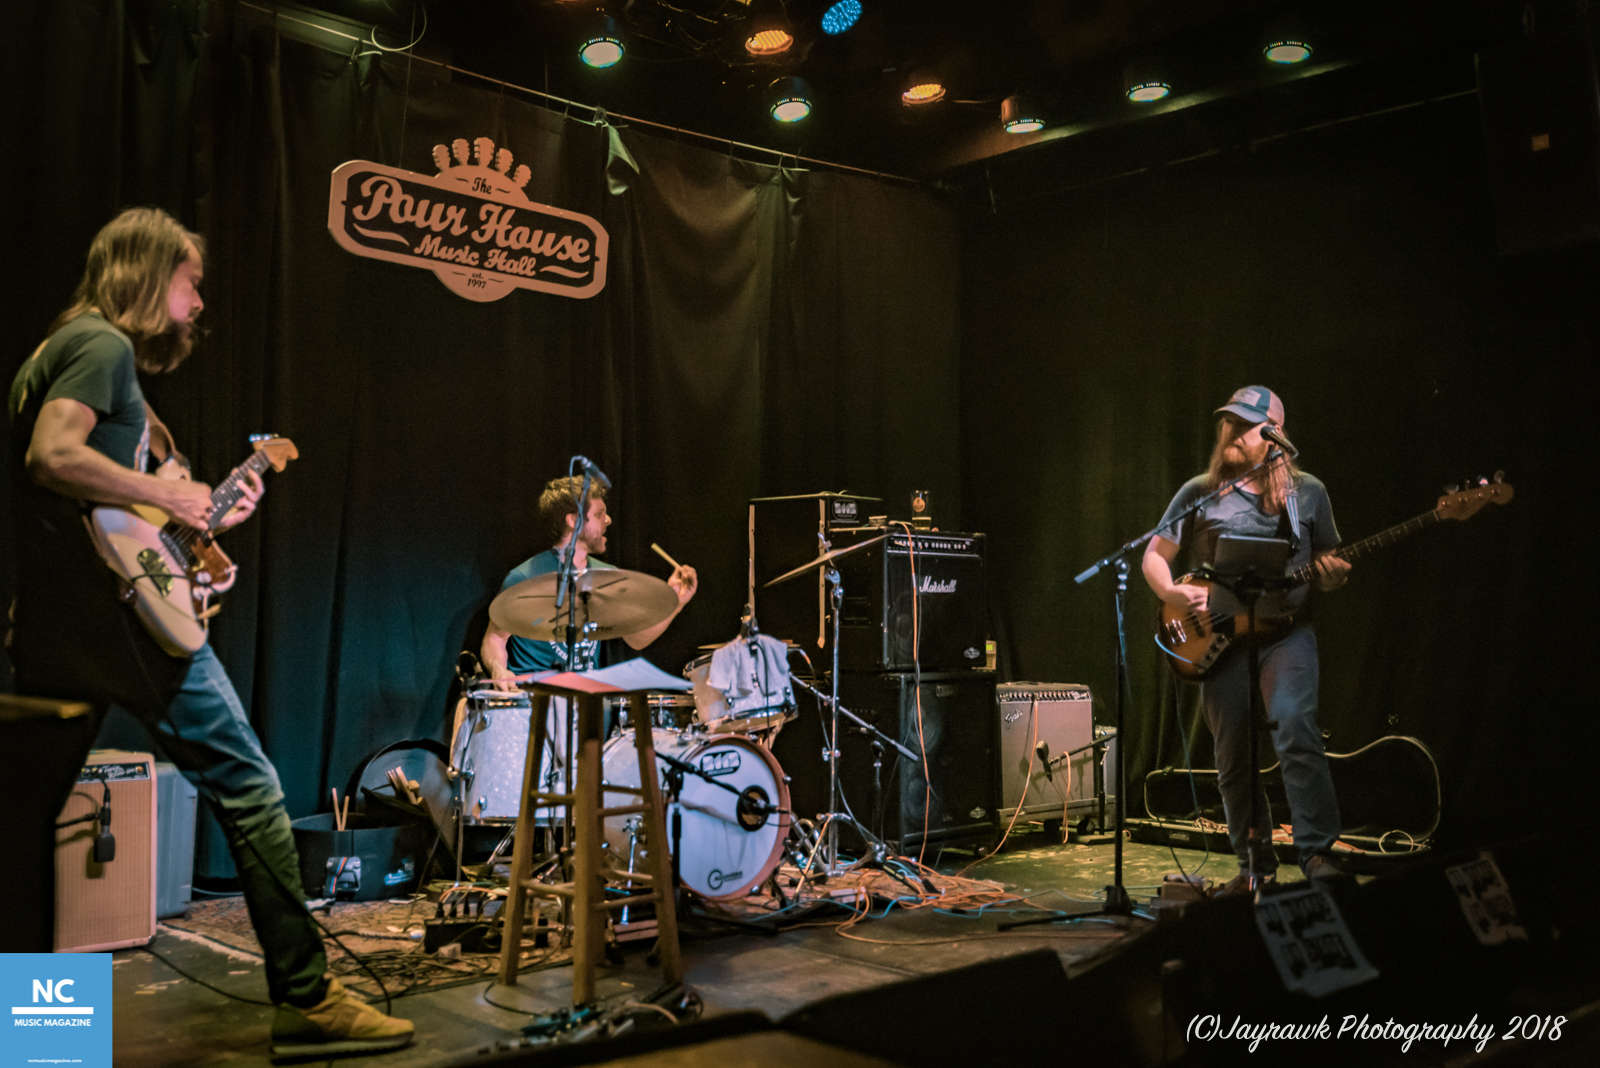 Reed Mathis Pourhouse 2018 edits-8.jpg